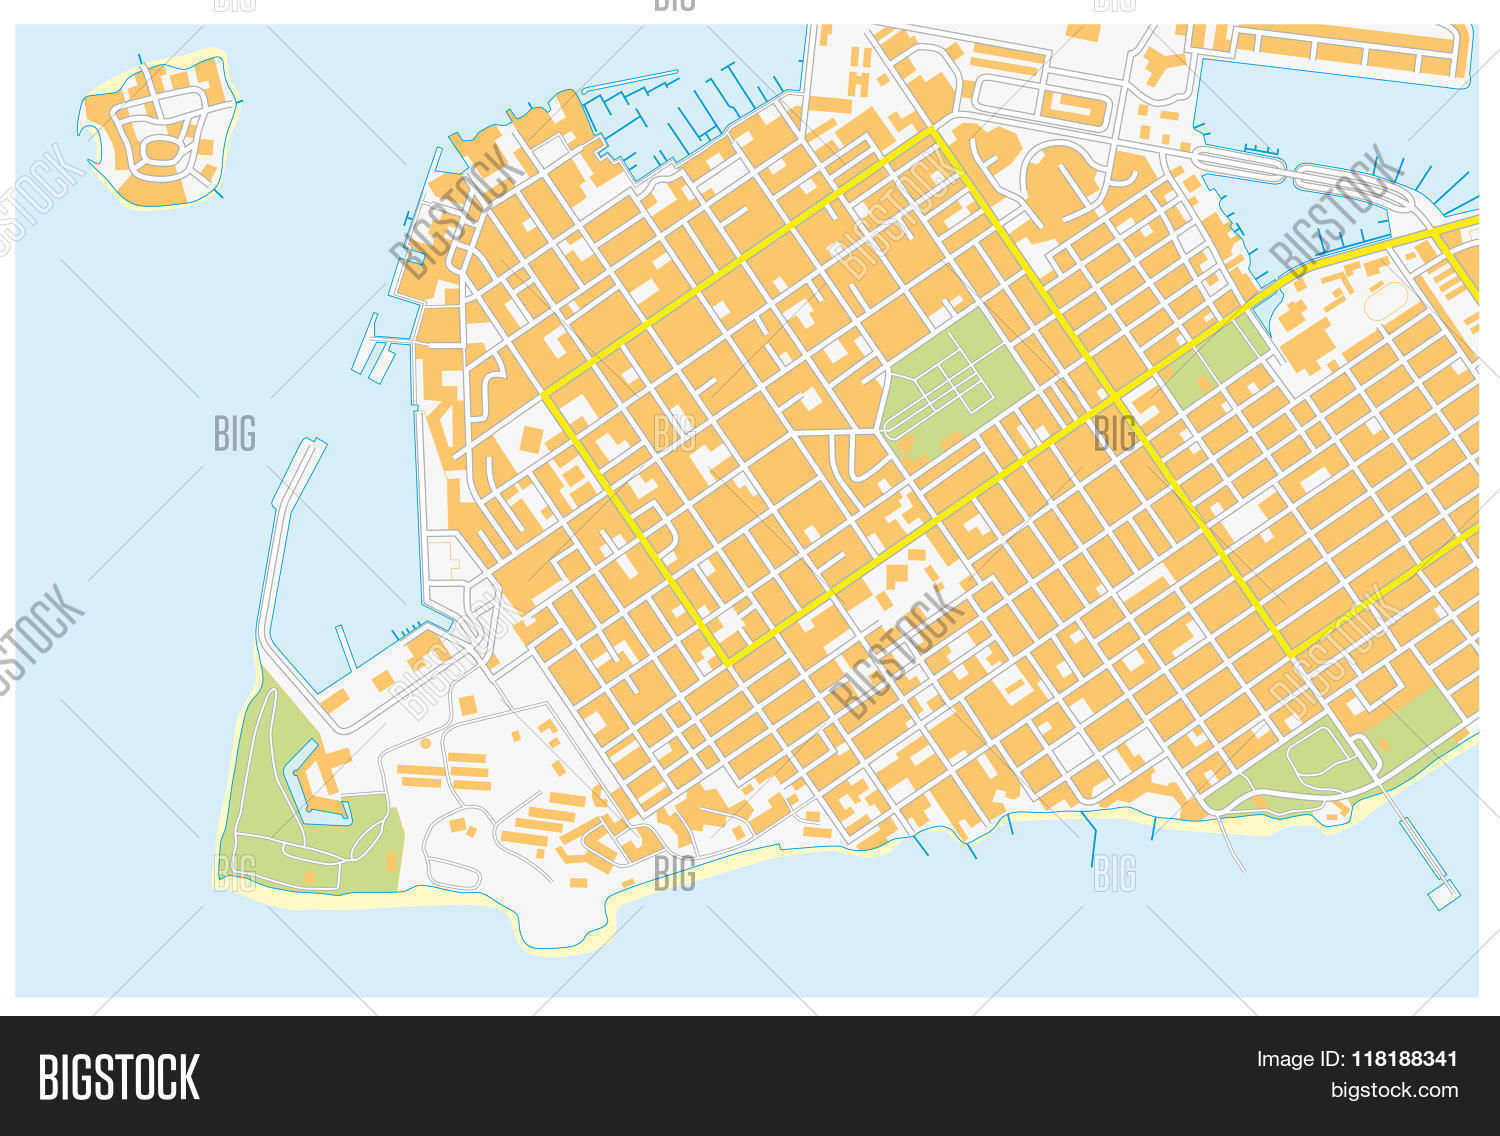 Key West Road Map Vector & Photo (Free Trial) | Bigstock